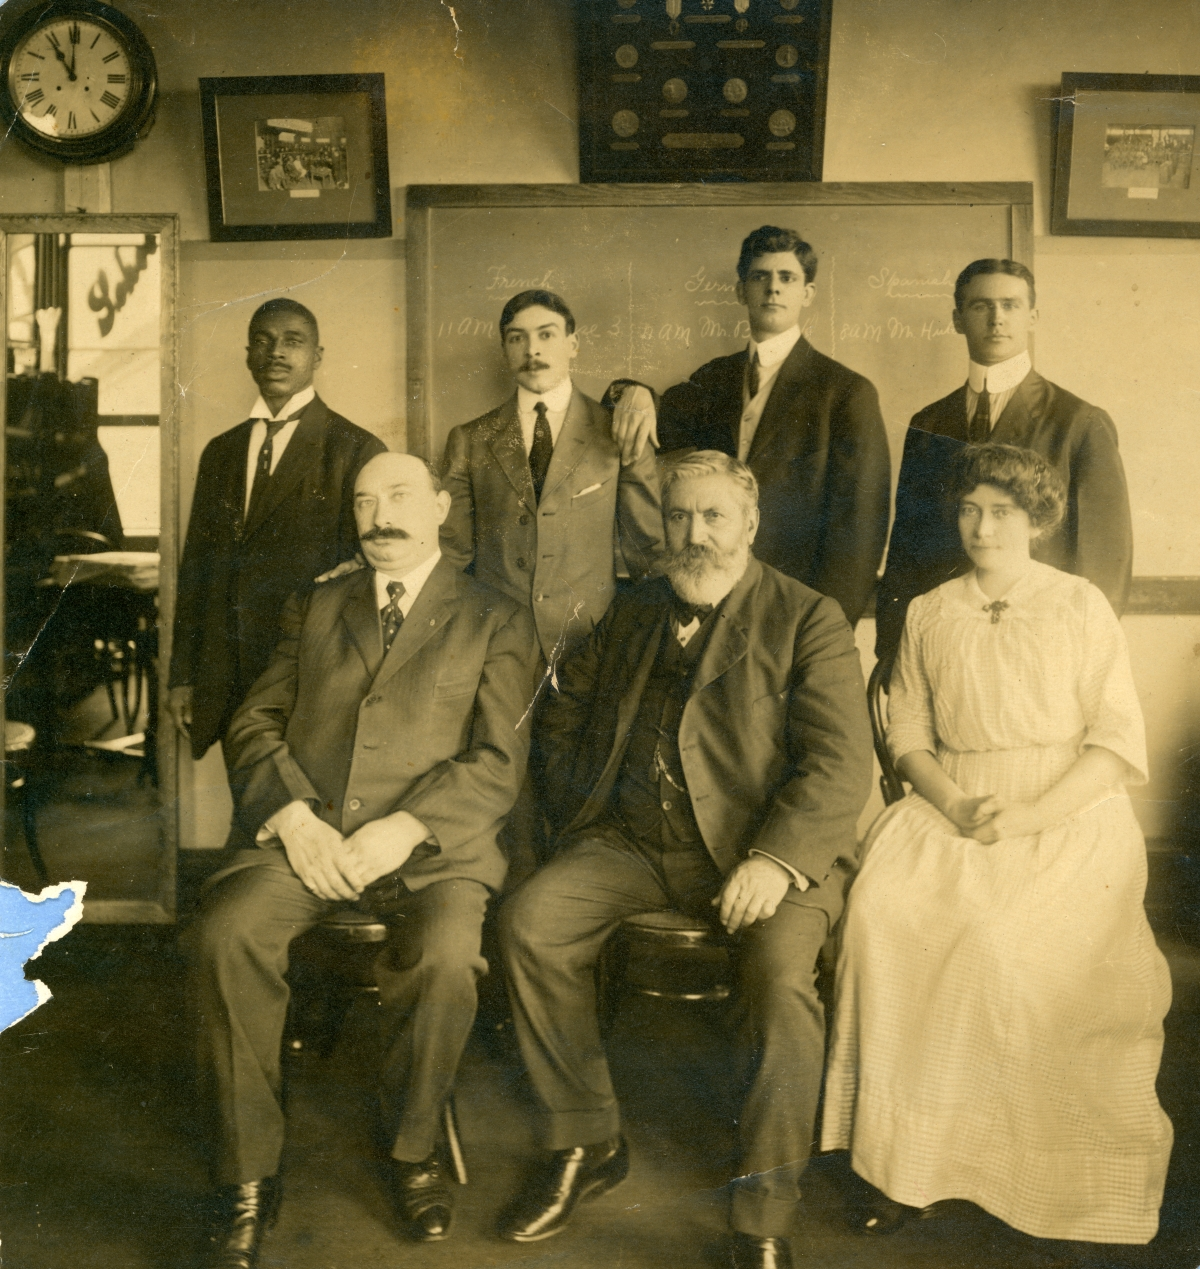 Vintner Emile DuBois, seated center, in a group photo - Tallahassee, Florida.